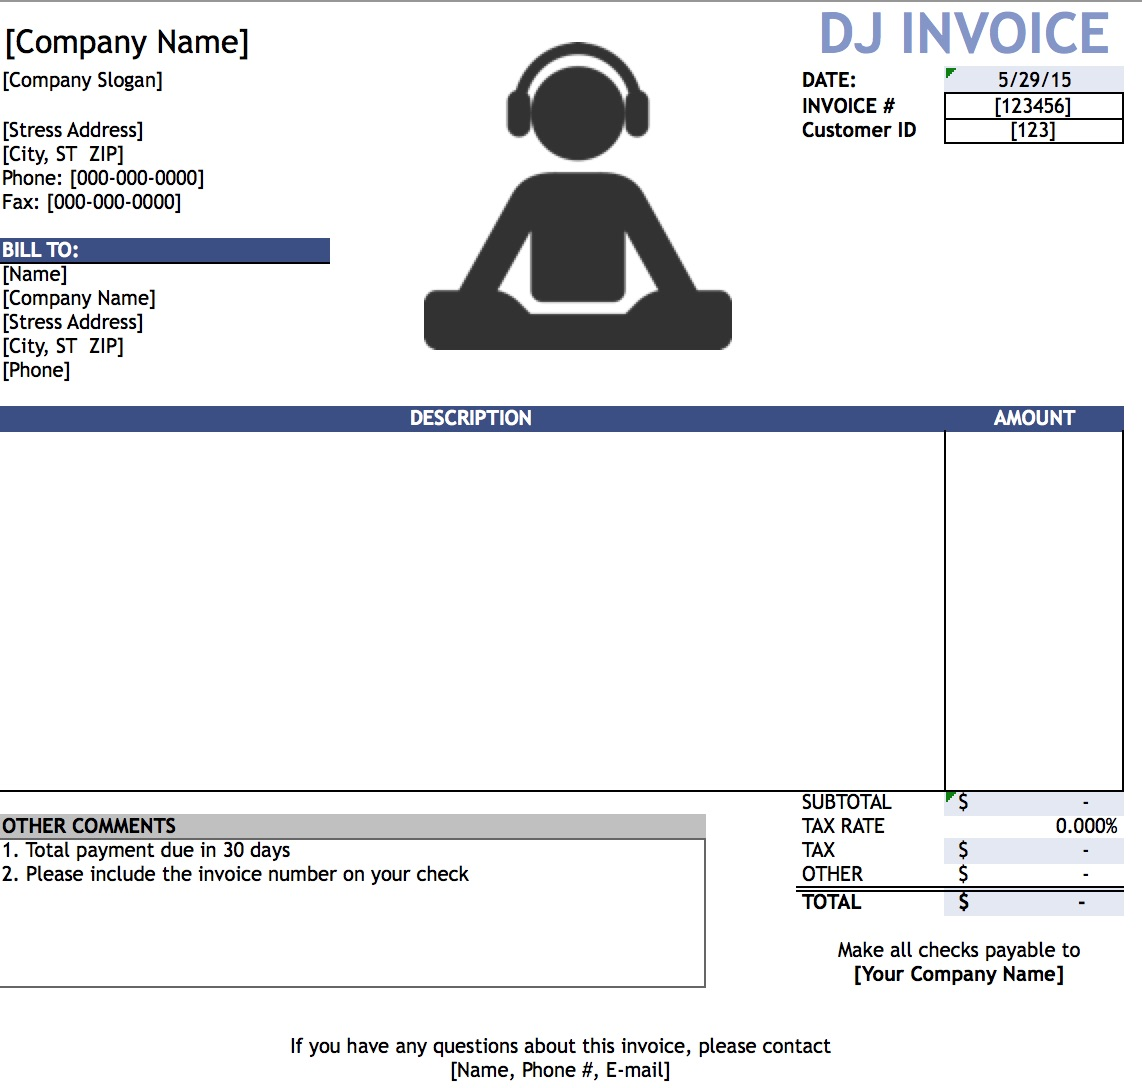 Free DJ Disc Jockey Invoice Template Excel PDF Word Doc - Blank invoice word document for service business